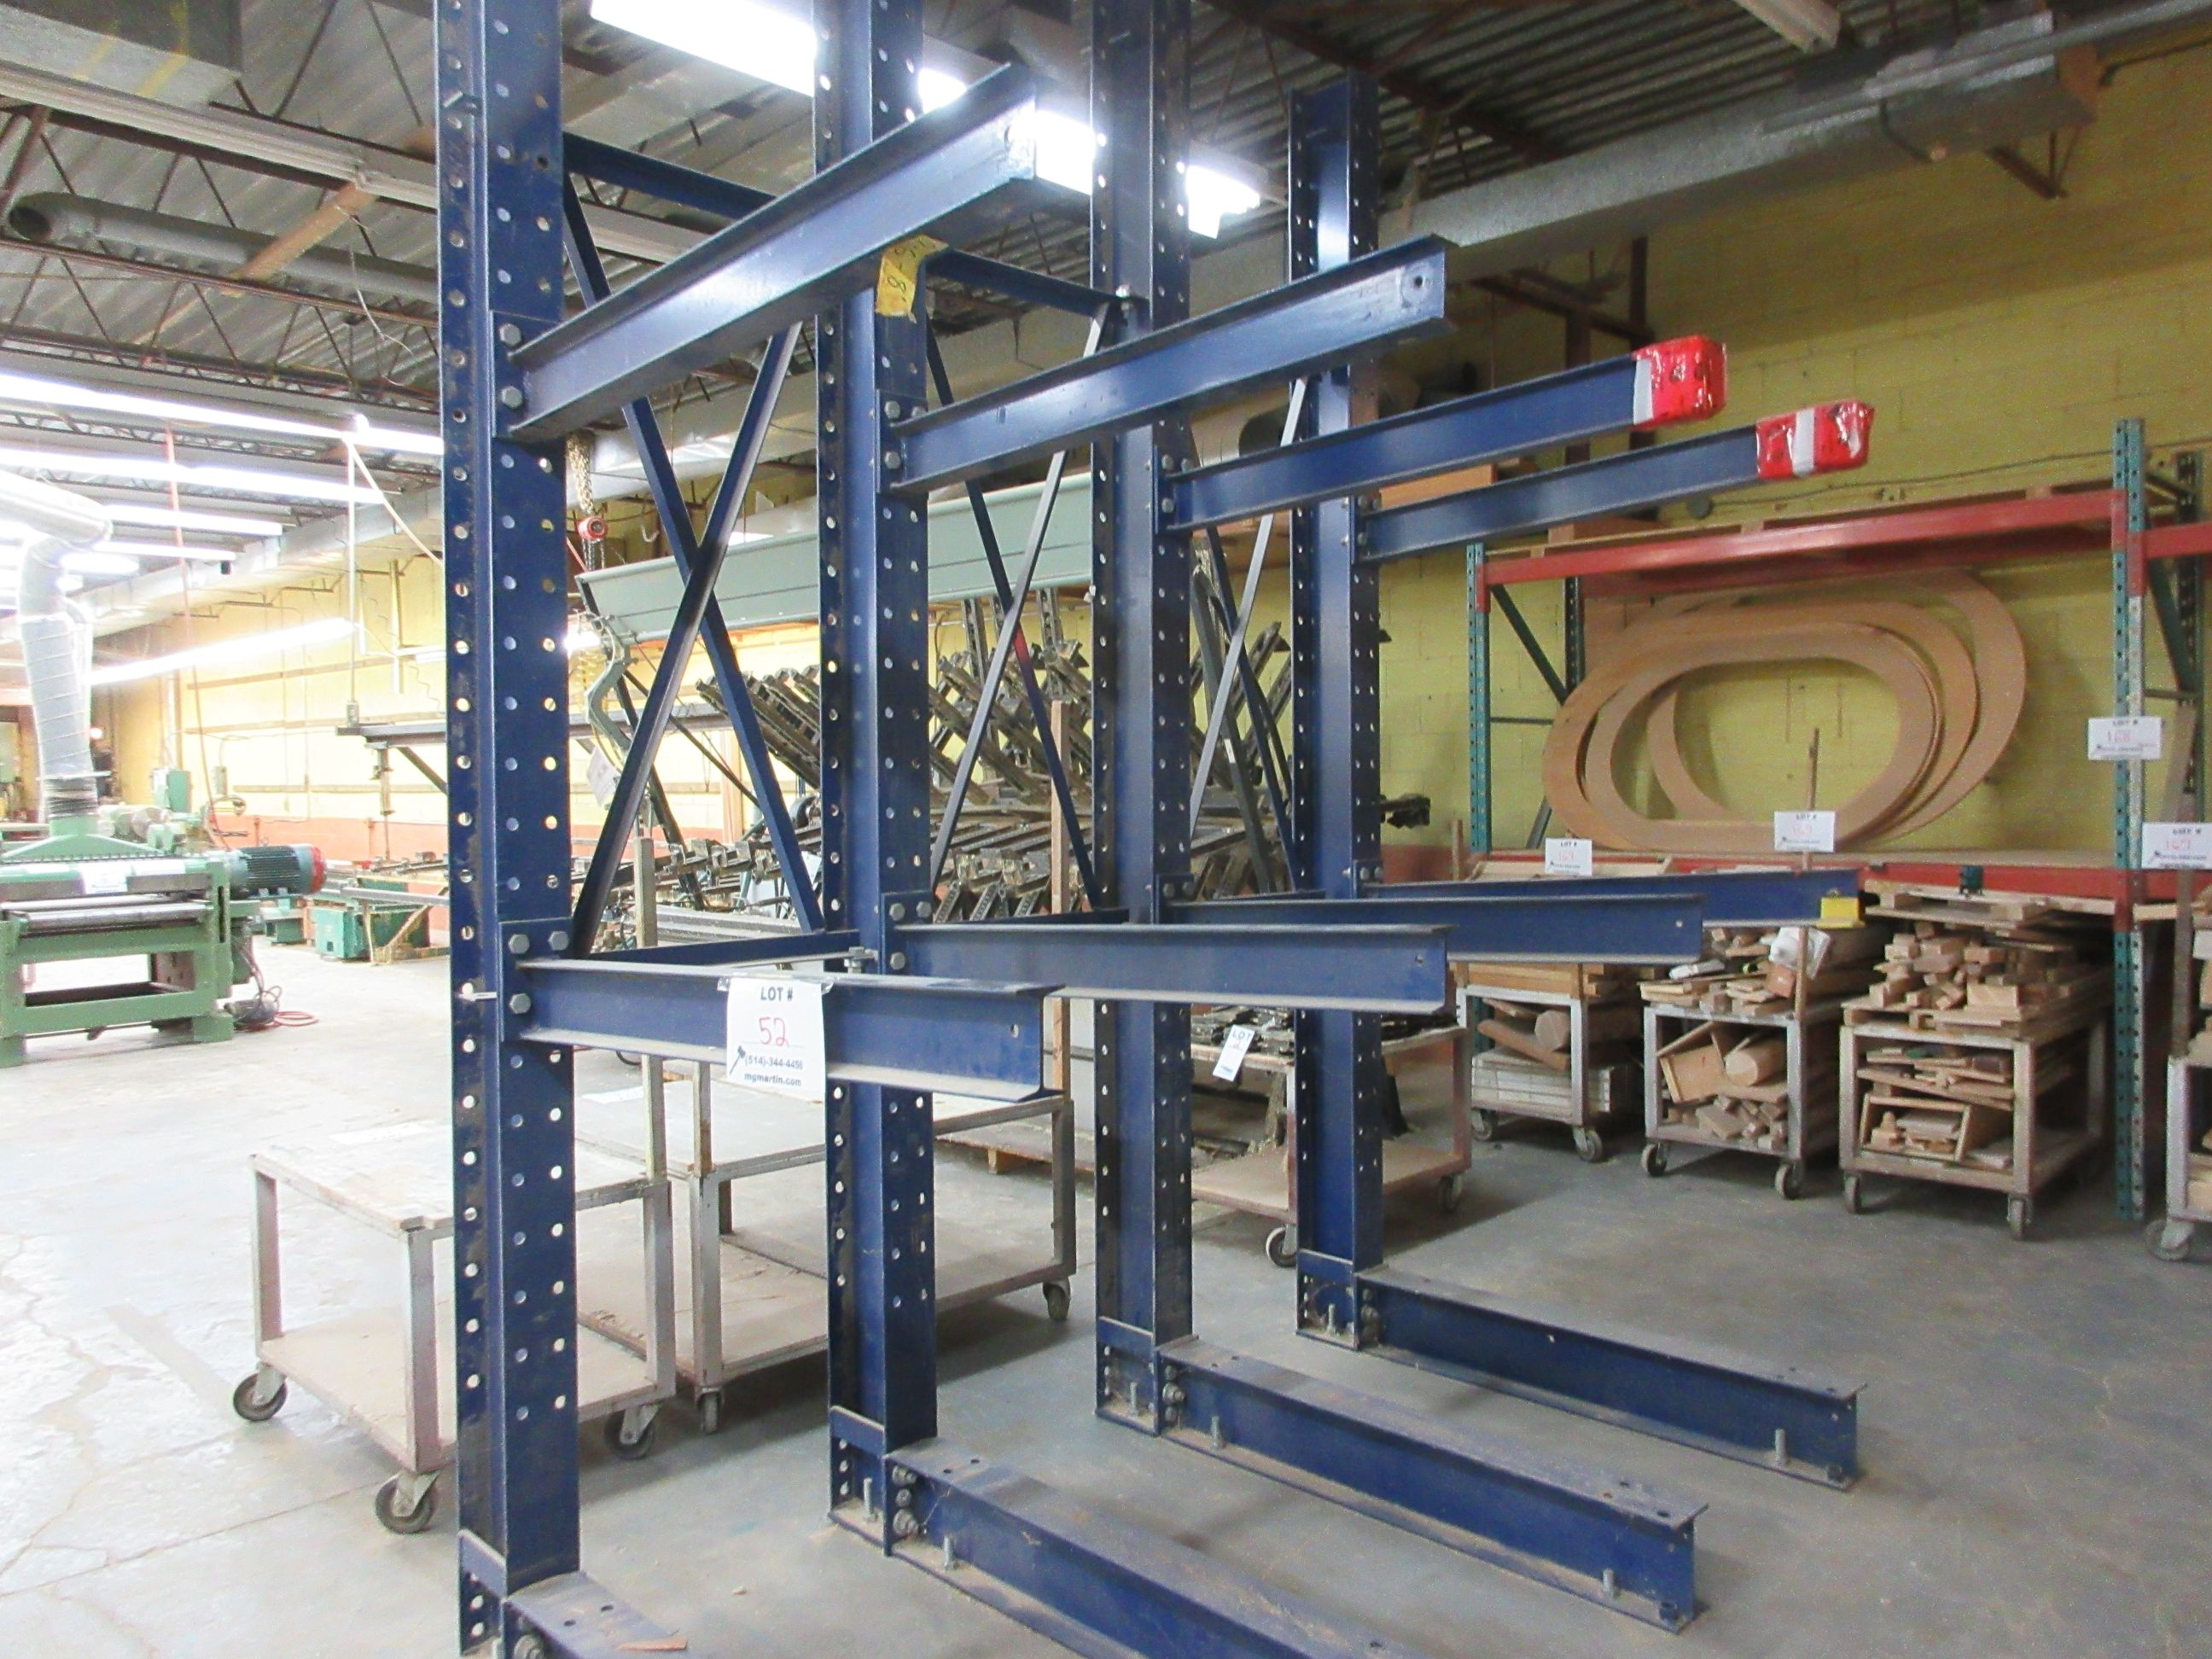 "CANTILEVER Heavy duty industrial wood racking 101""w x 139"" h x 60"" d - Image 2 of 2"